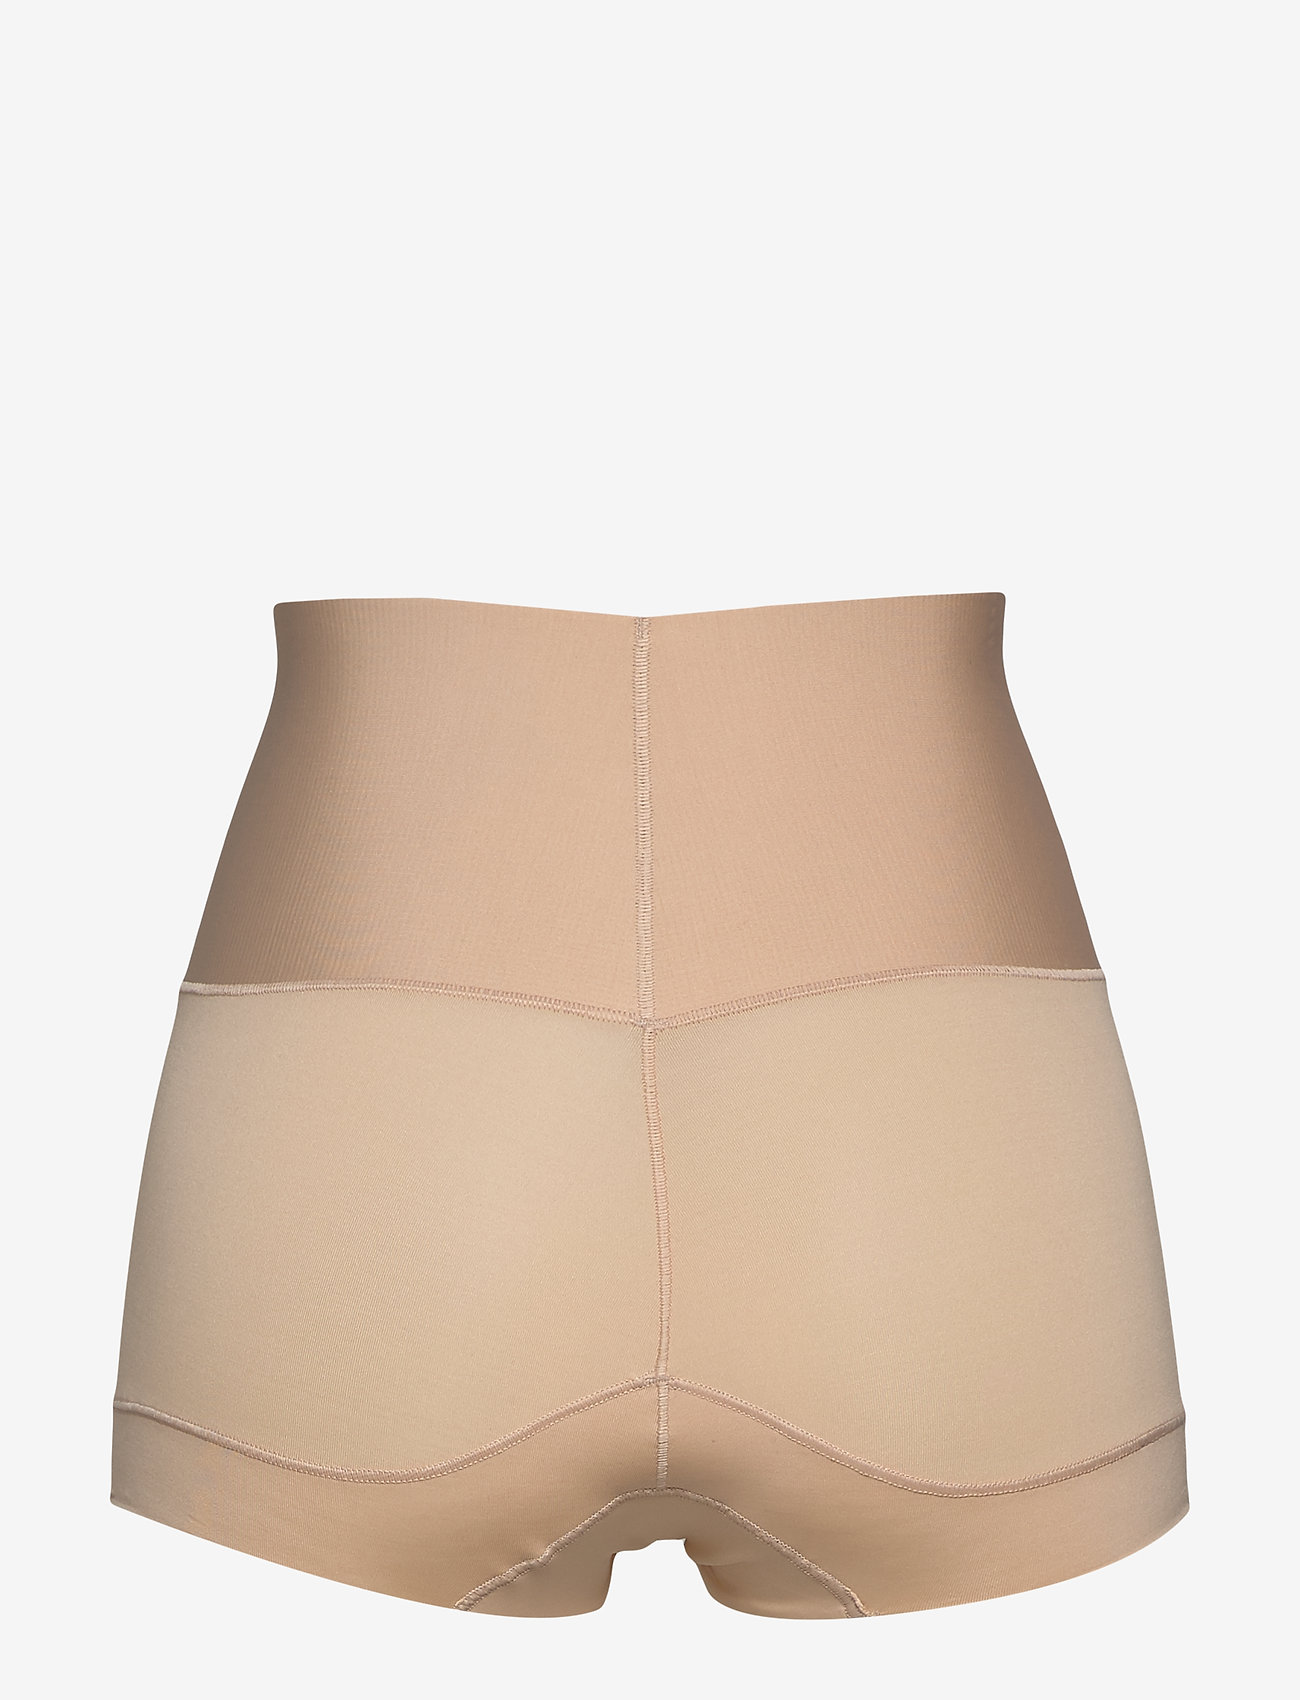 Maidenform - TAME YOUR TUMMY MISSY - bottoms - nude1/transparent - 1